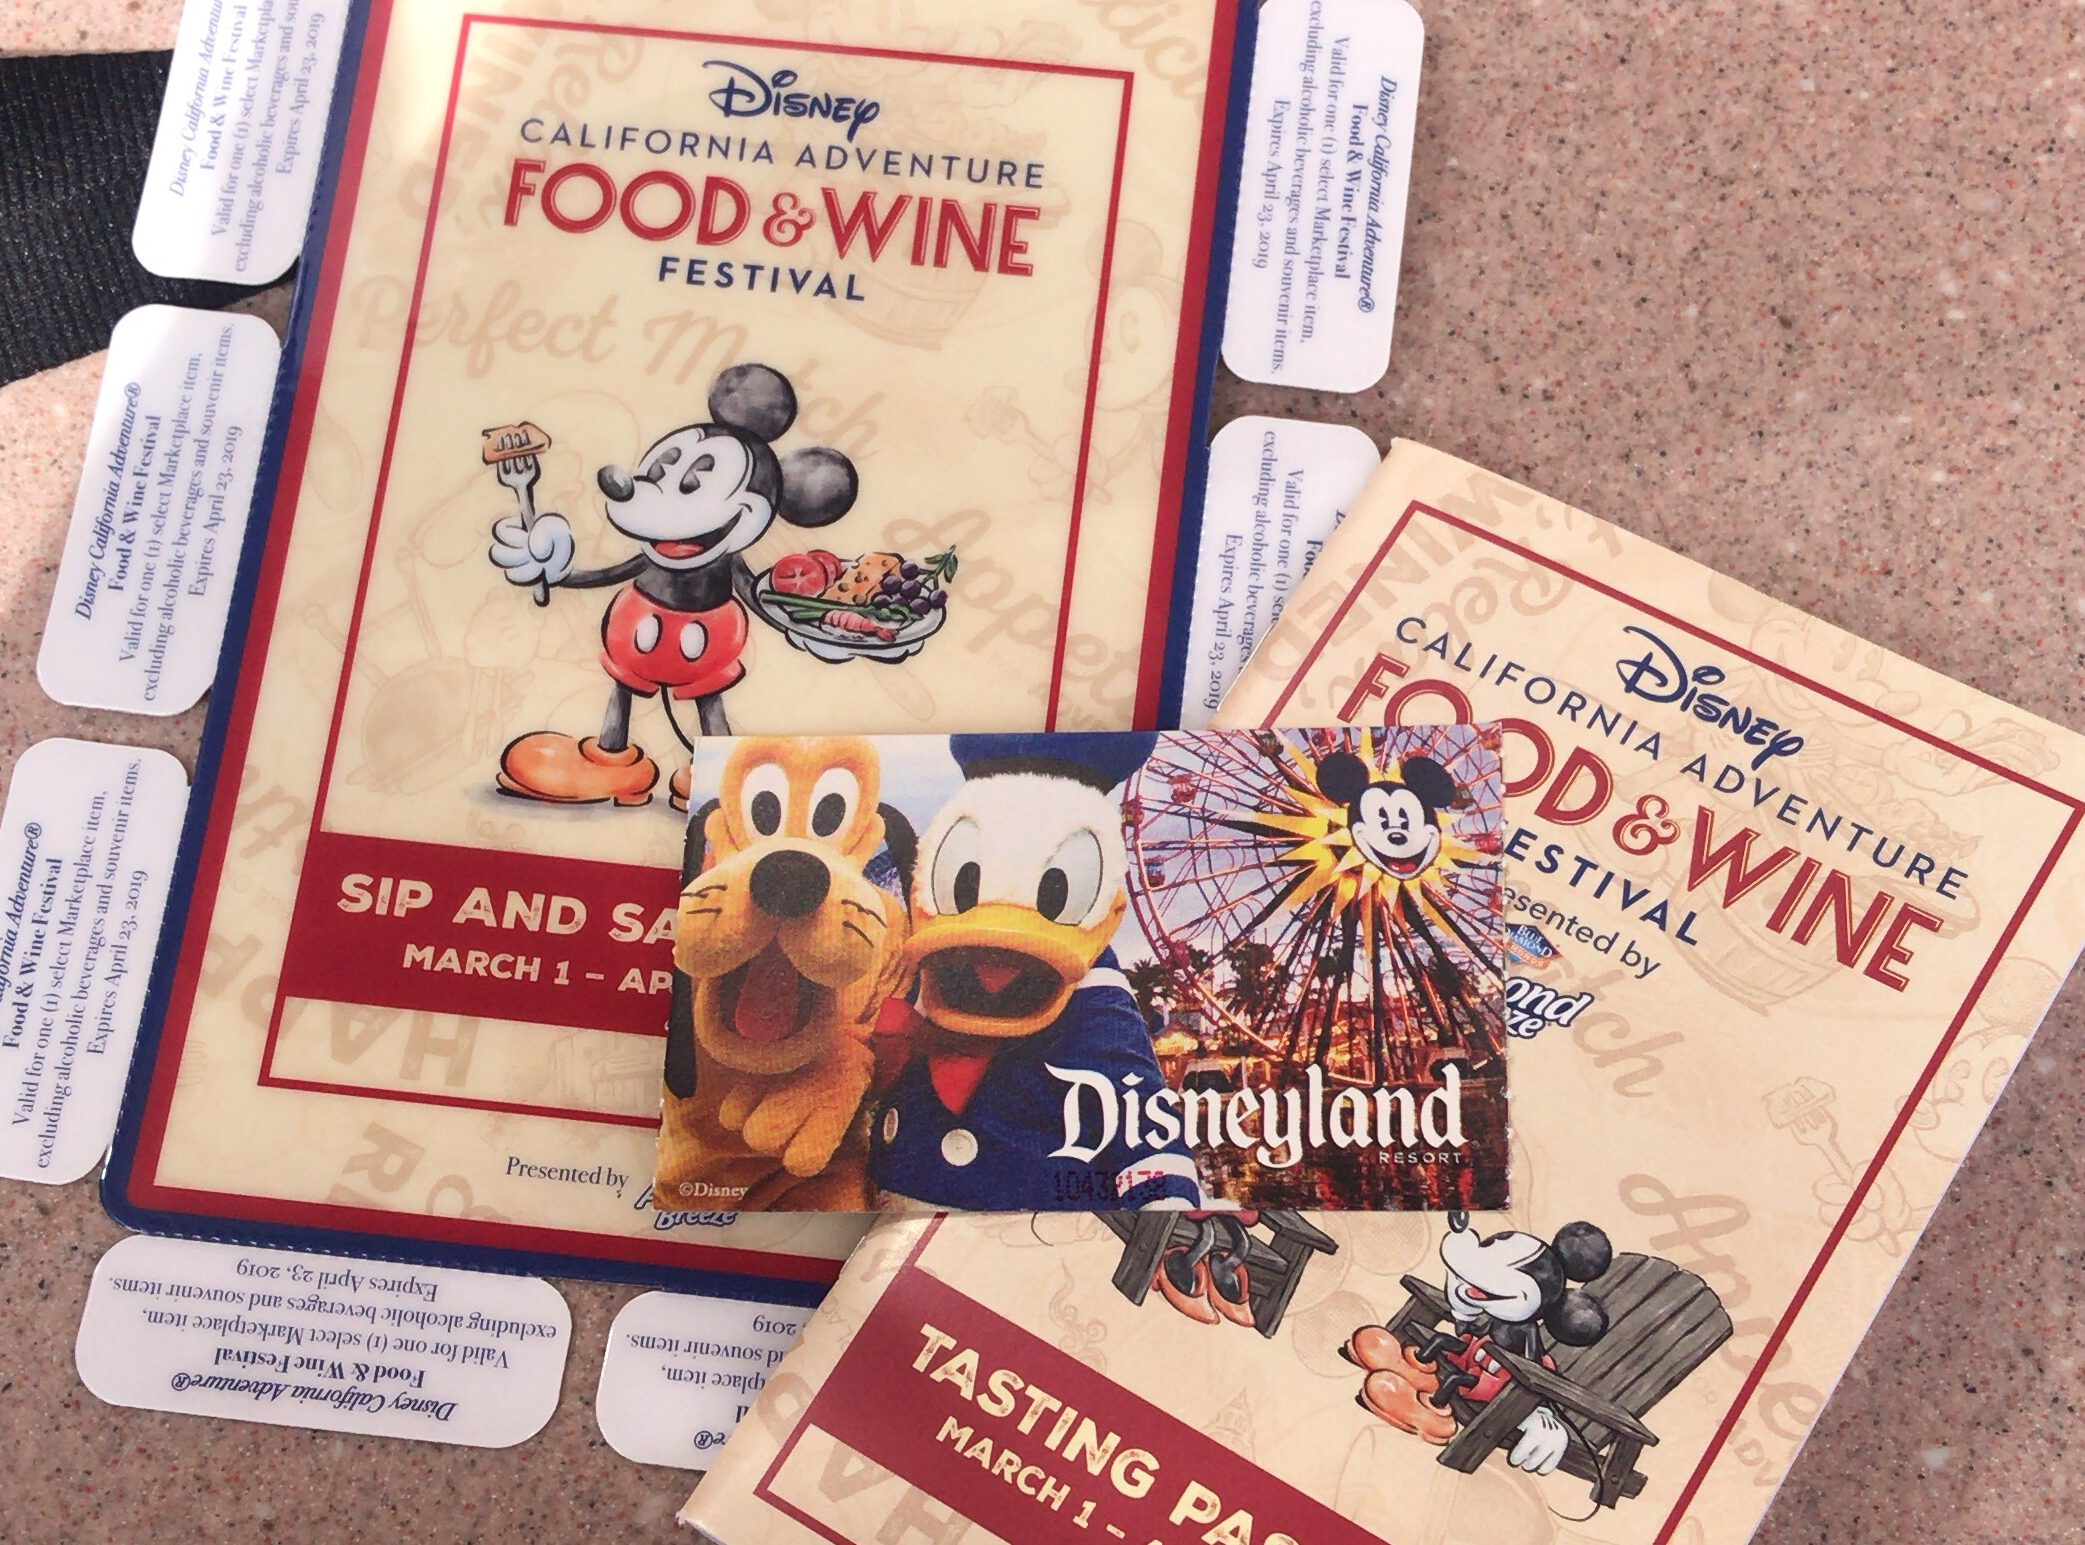 Disneys California Adventure Food and Wine Sip and Savor